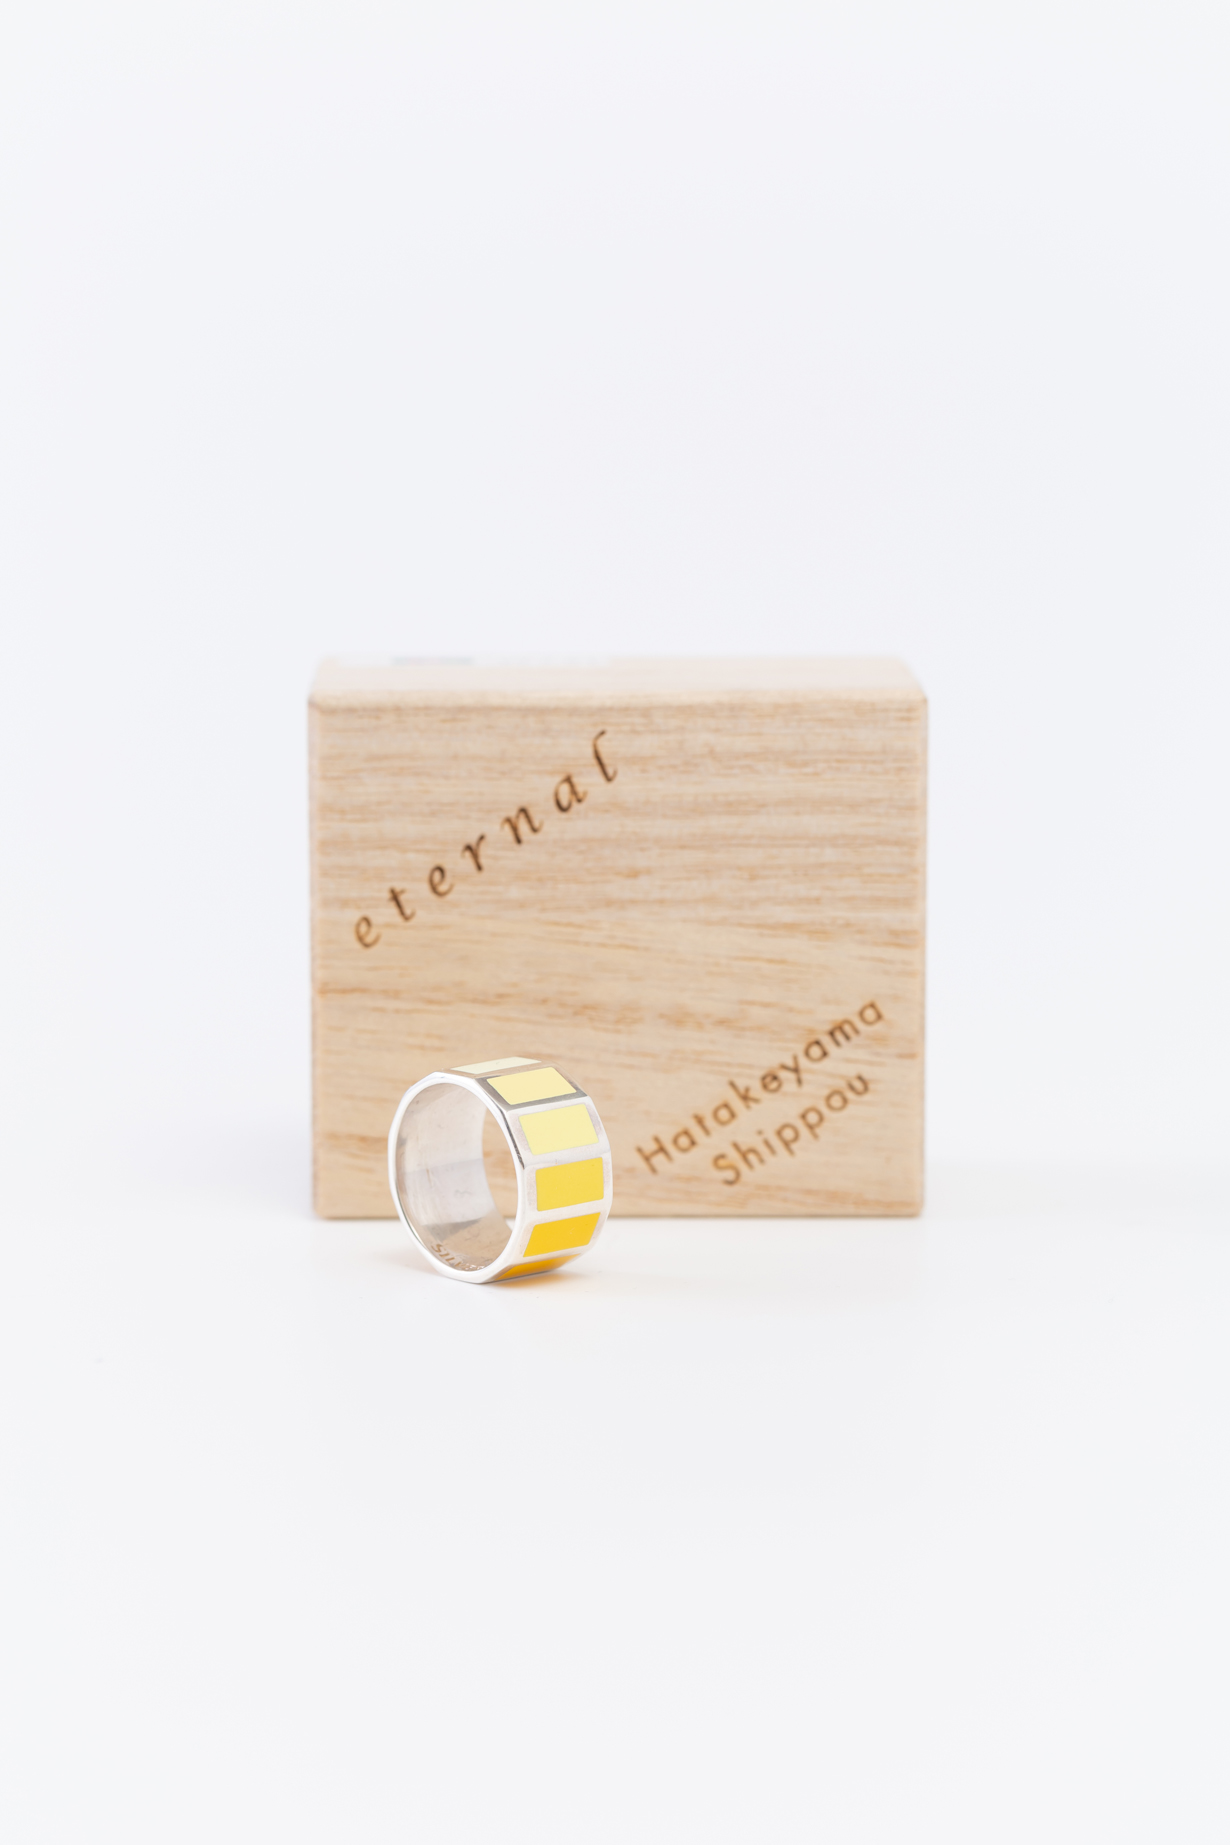 eternal(yellow)  W12mm